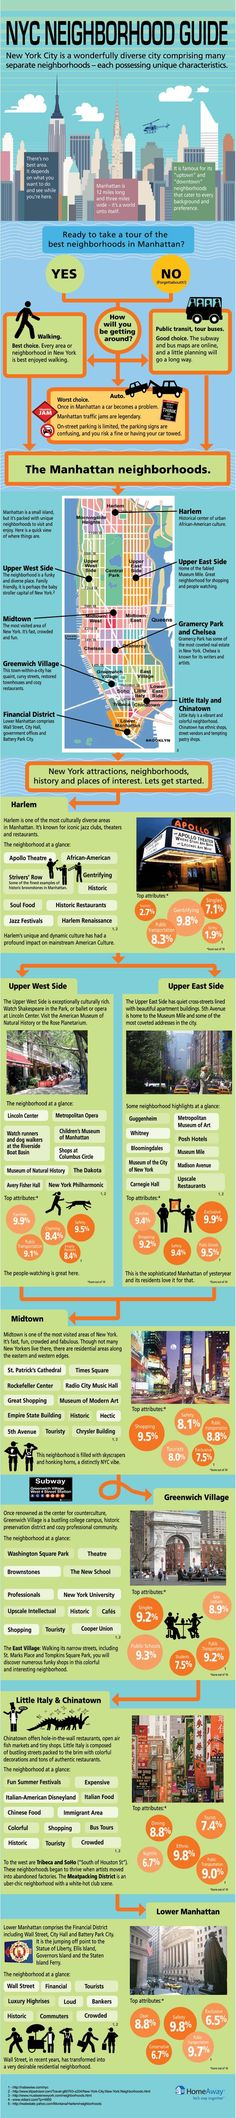 NYC Neighborhood Guide - Visit Like a Local [Infographic]